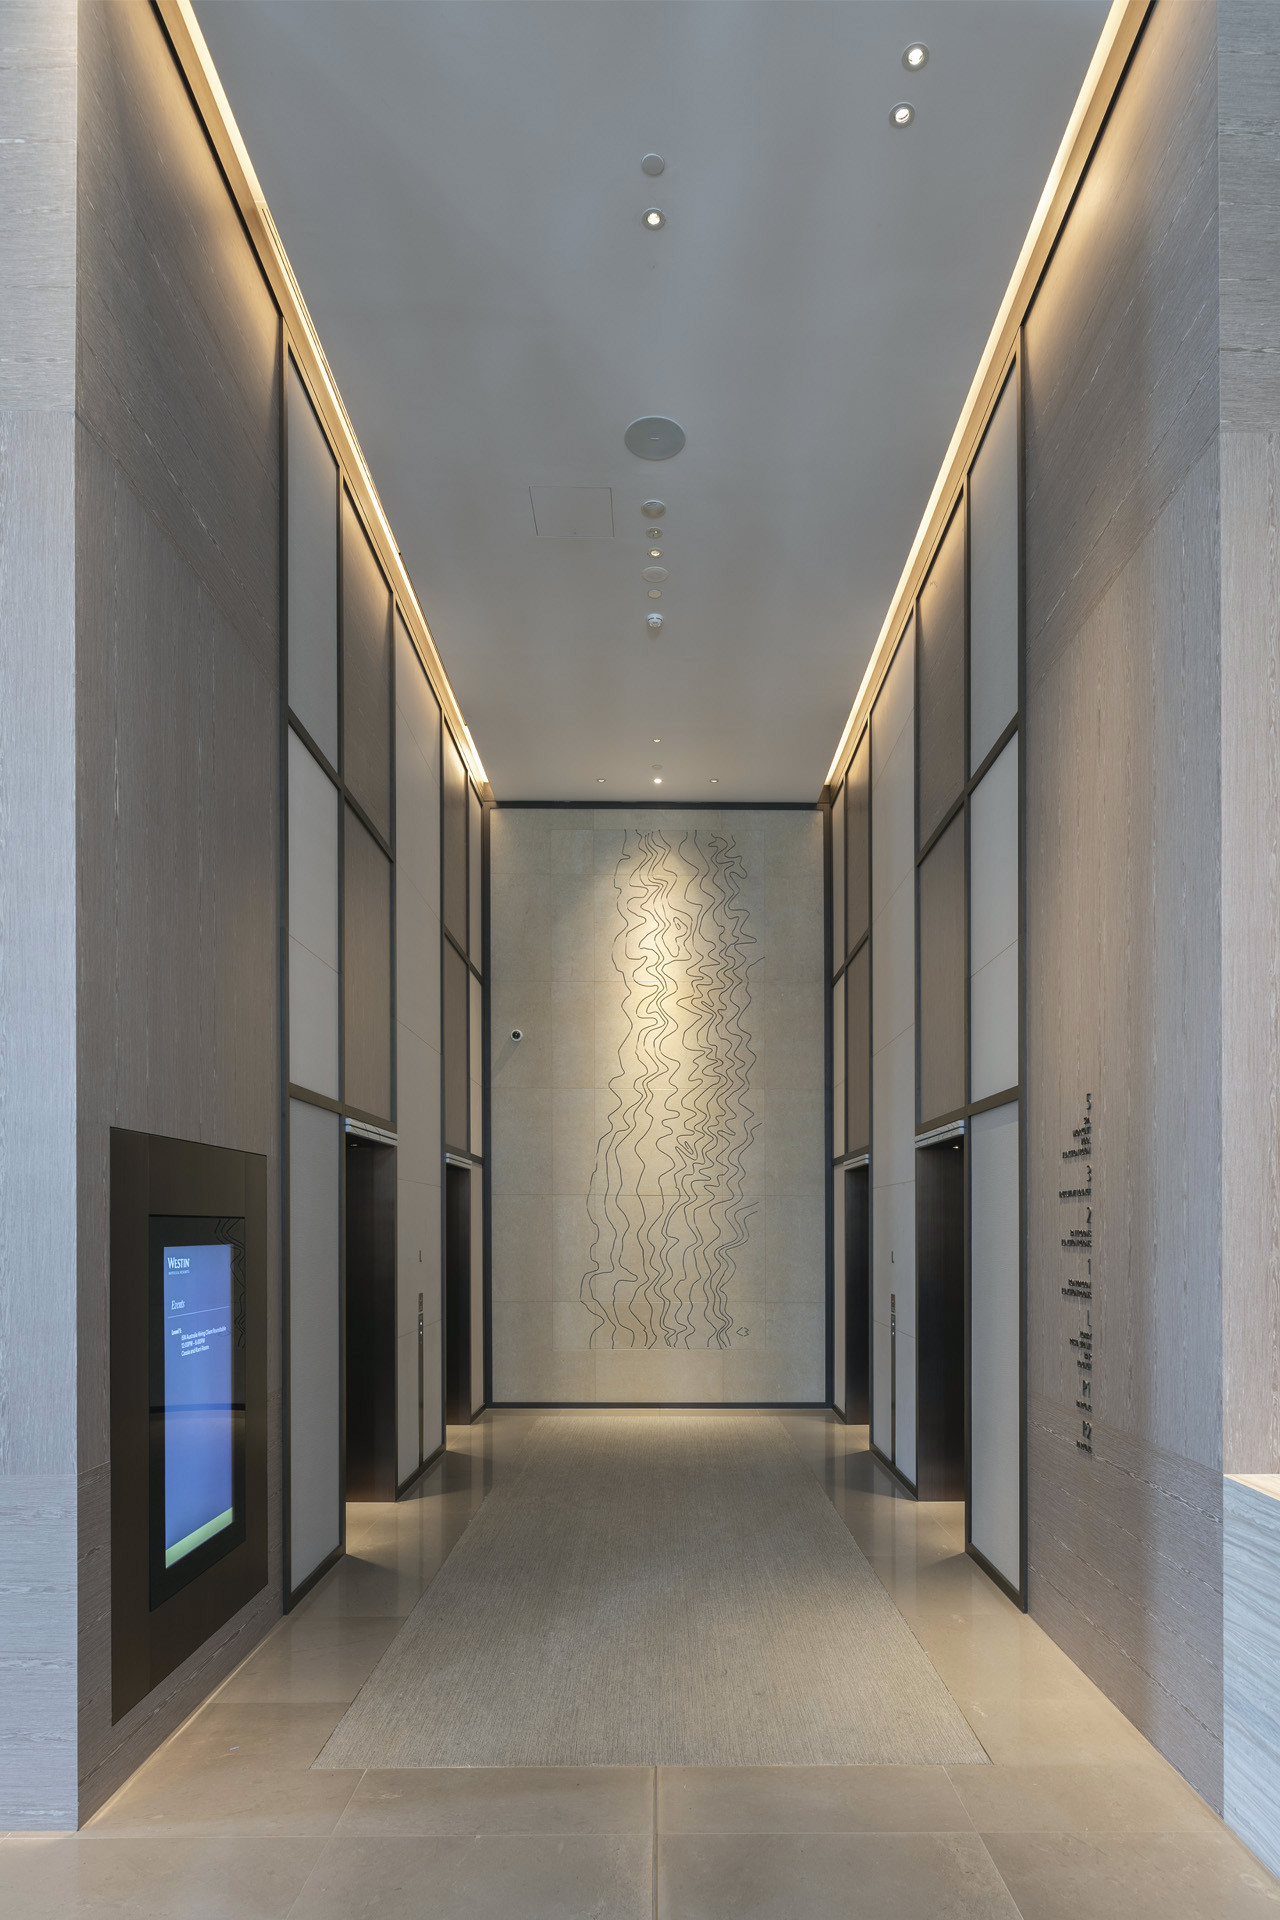 'Driftwood' 2018  Relief sculpture in sandstone, 500 x 200cm installed in the main lift lobby